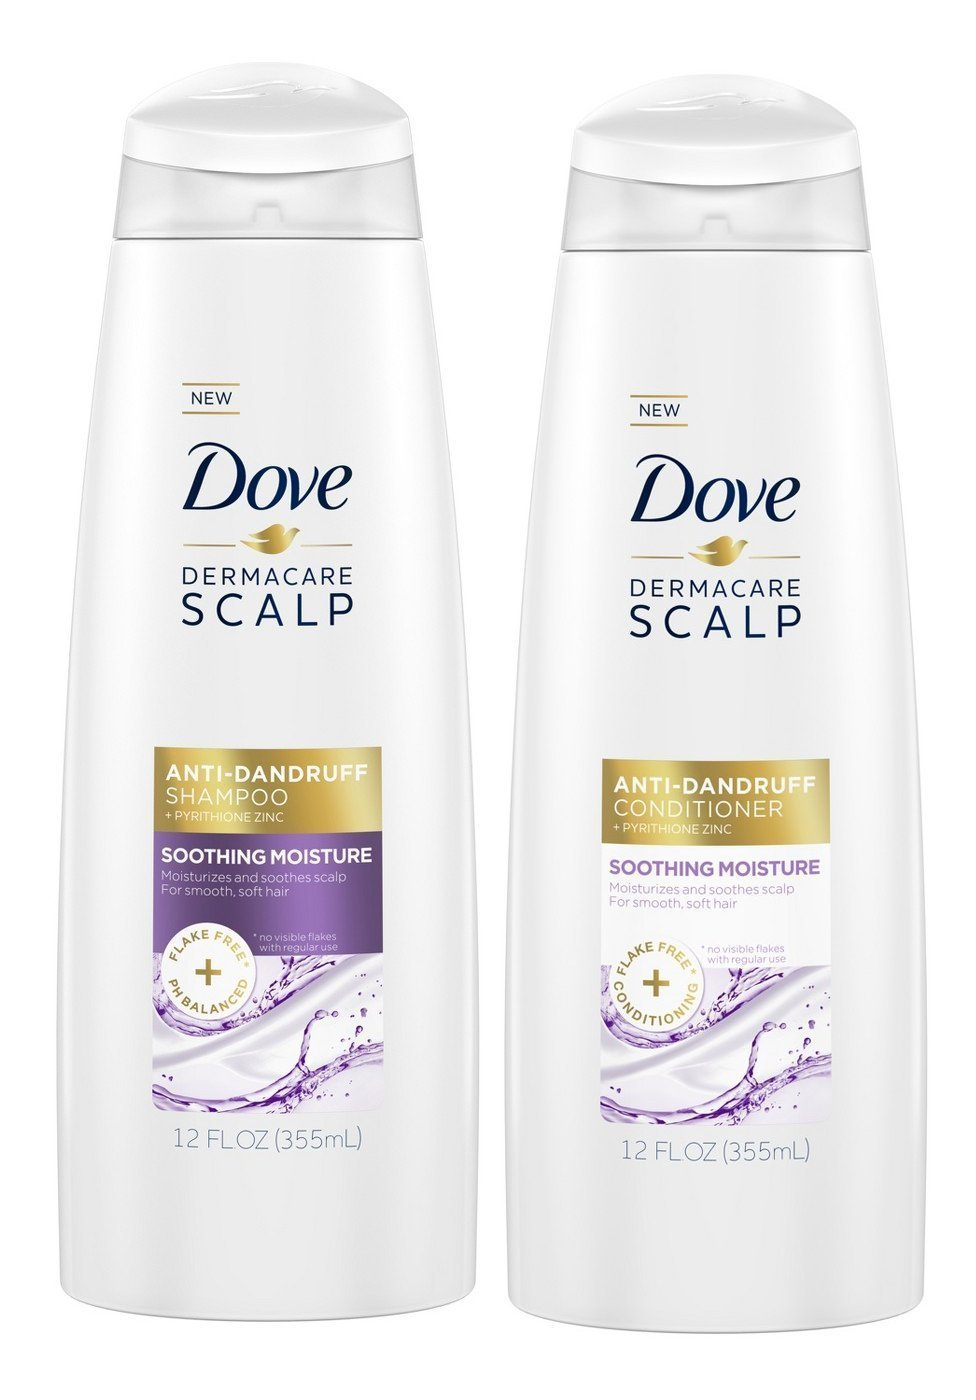 Dove Dermacare Soothing Moisture Shampoo & Conditioner Set, 12 Oz Each